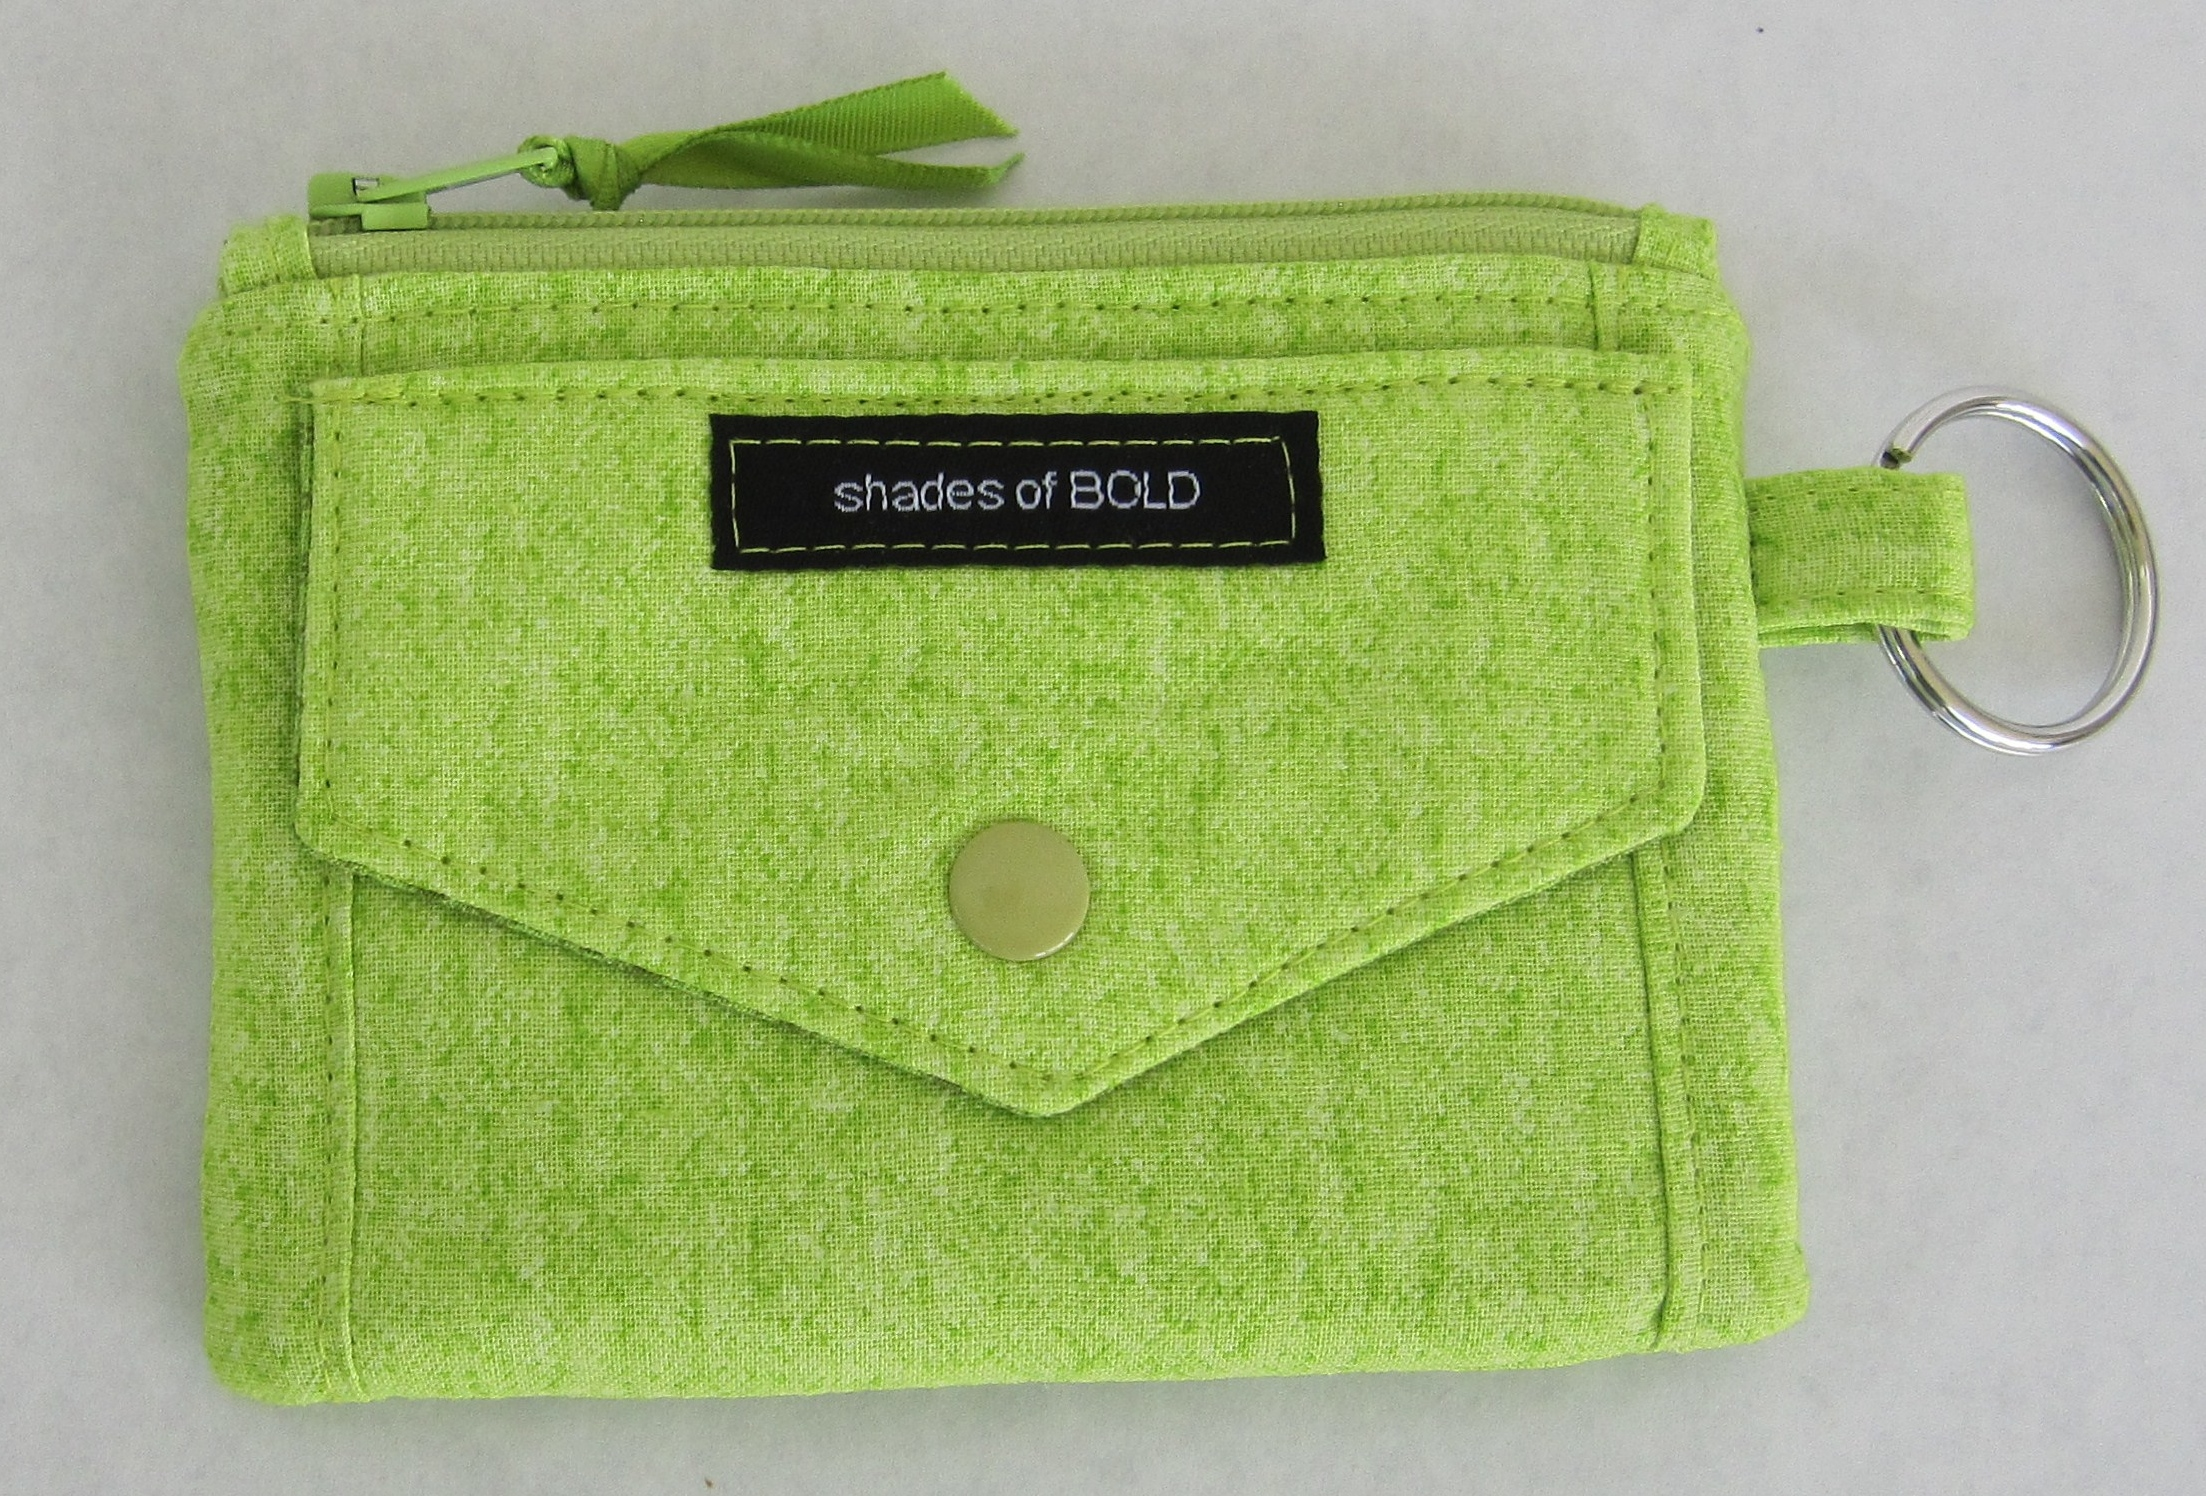 Kristine ID Wallet green front pocket - Marilyn Brandt.jpg